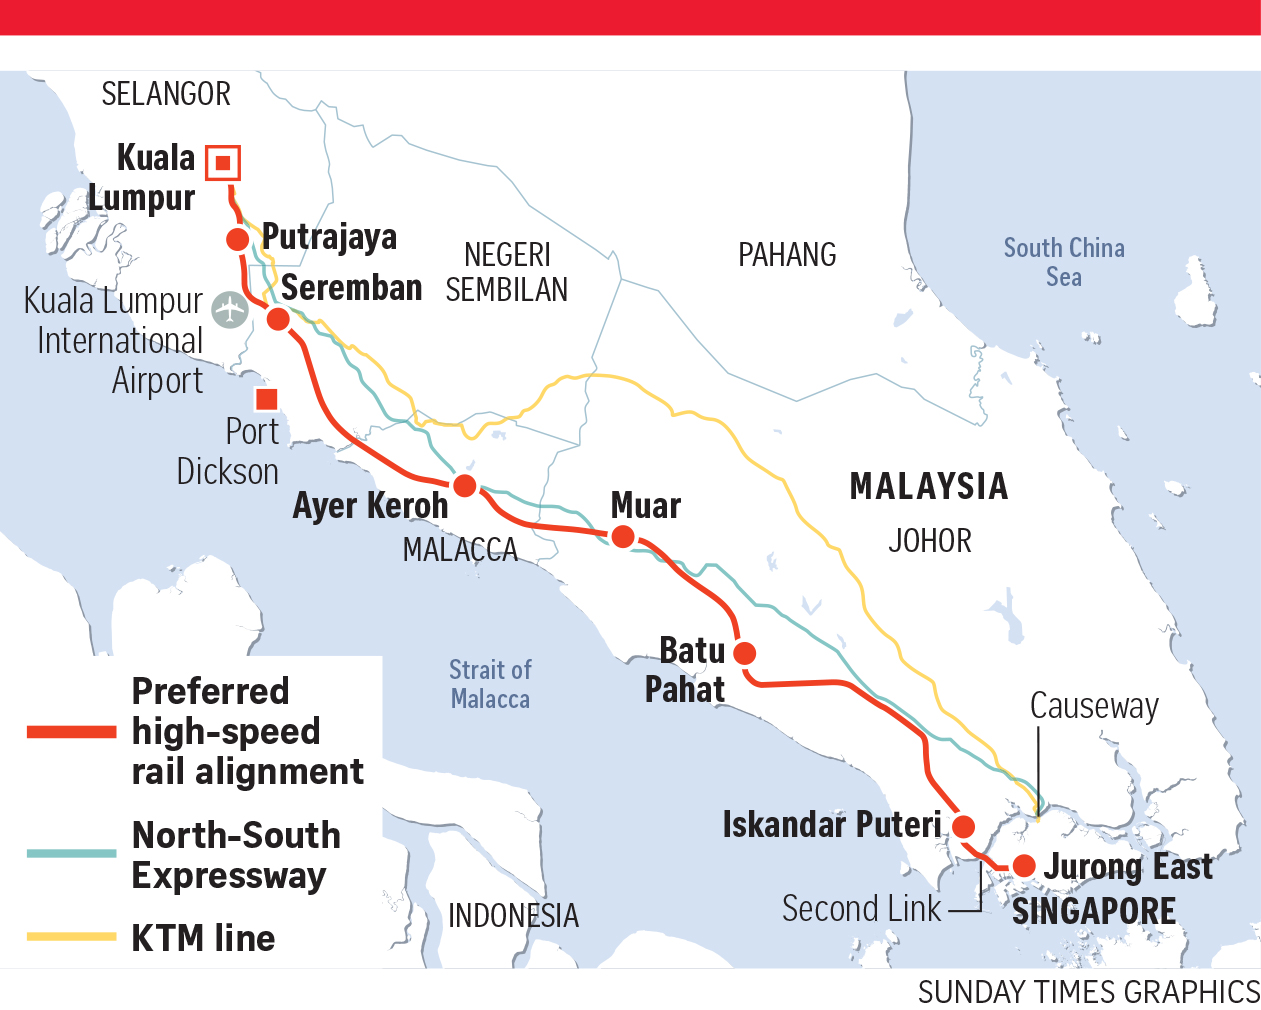 The agreed upon high speed rail alignment between Singapore and Kuala Lumpur,  photo from the Straits Times